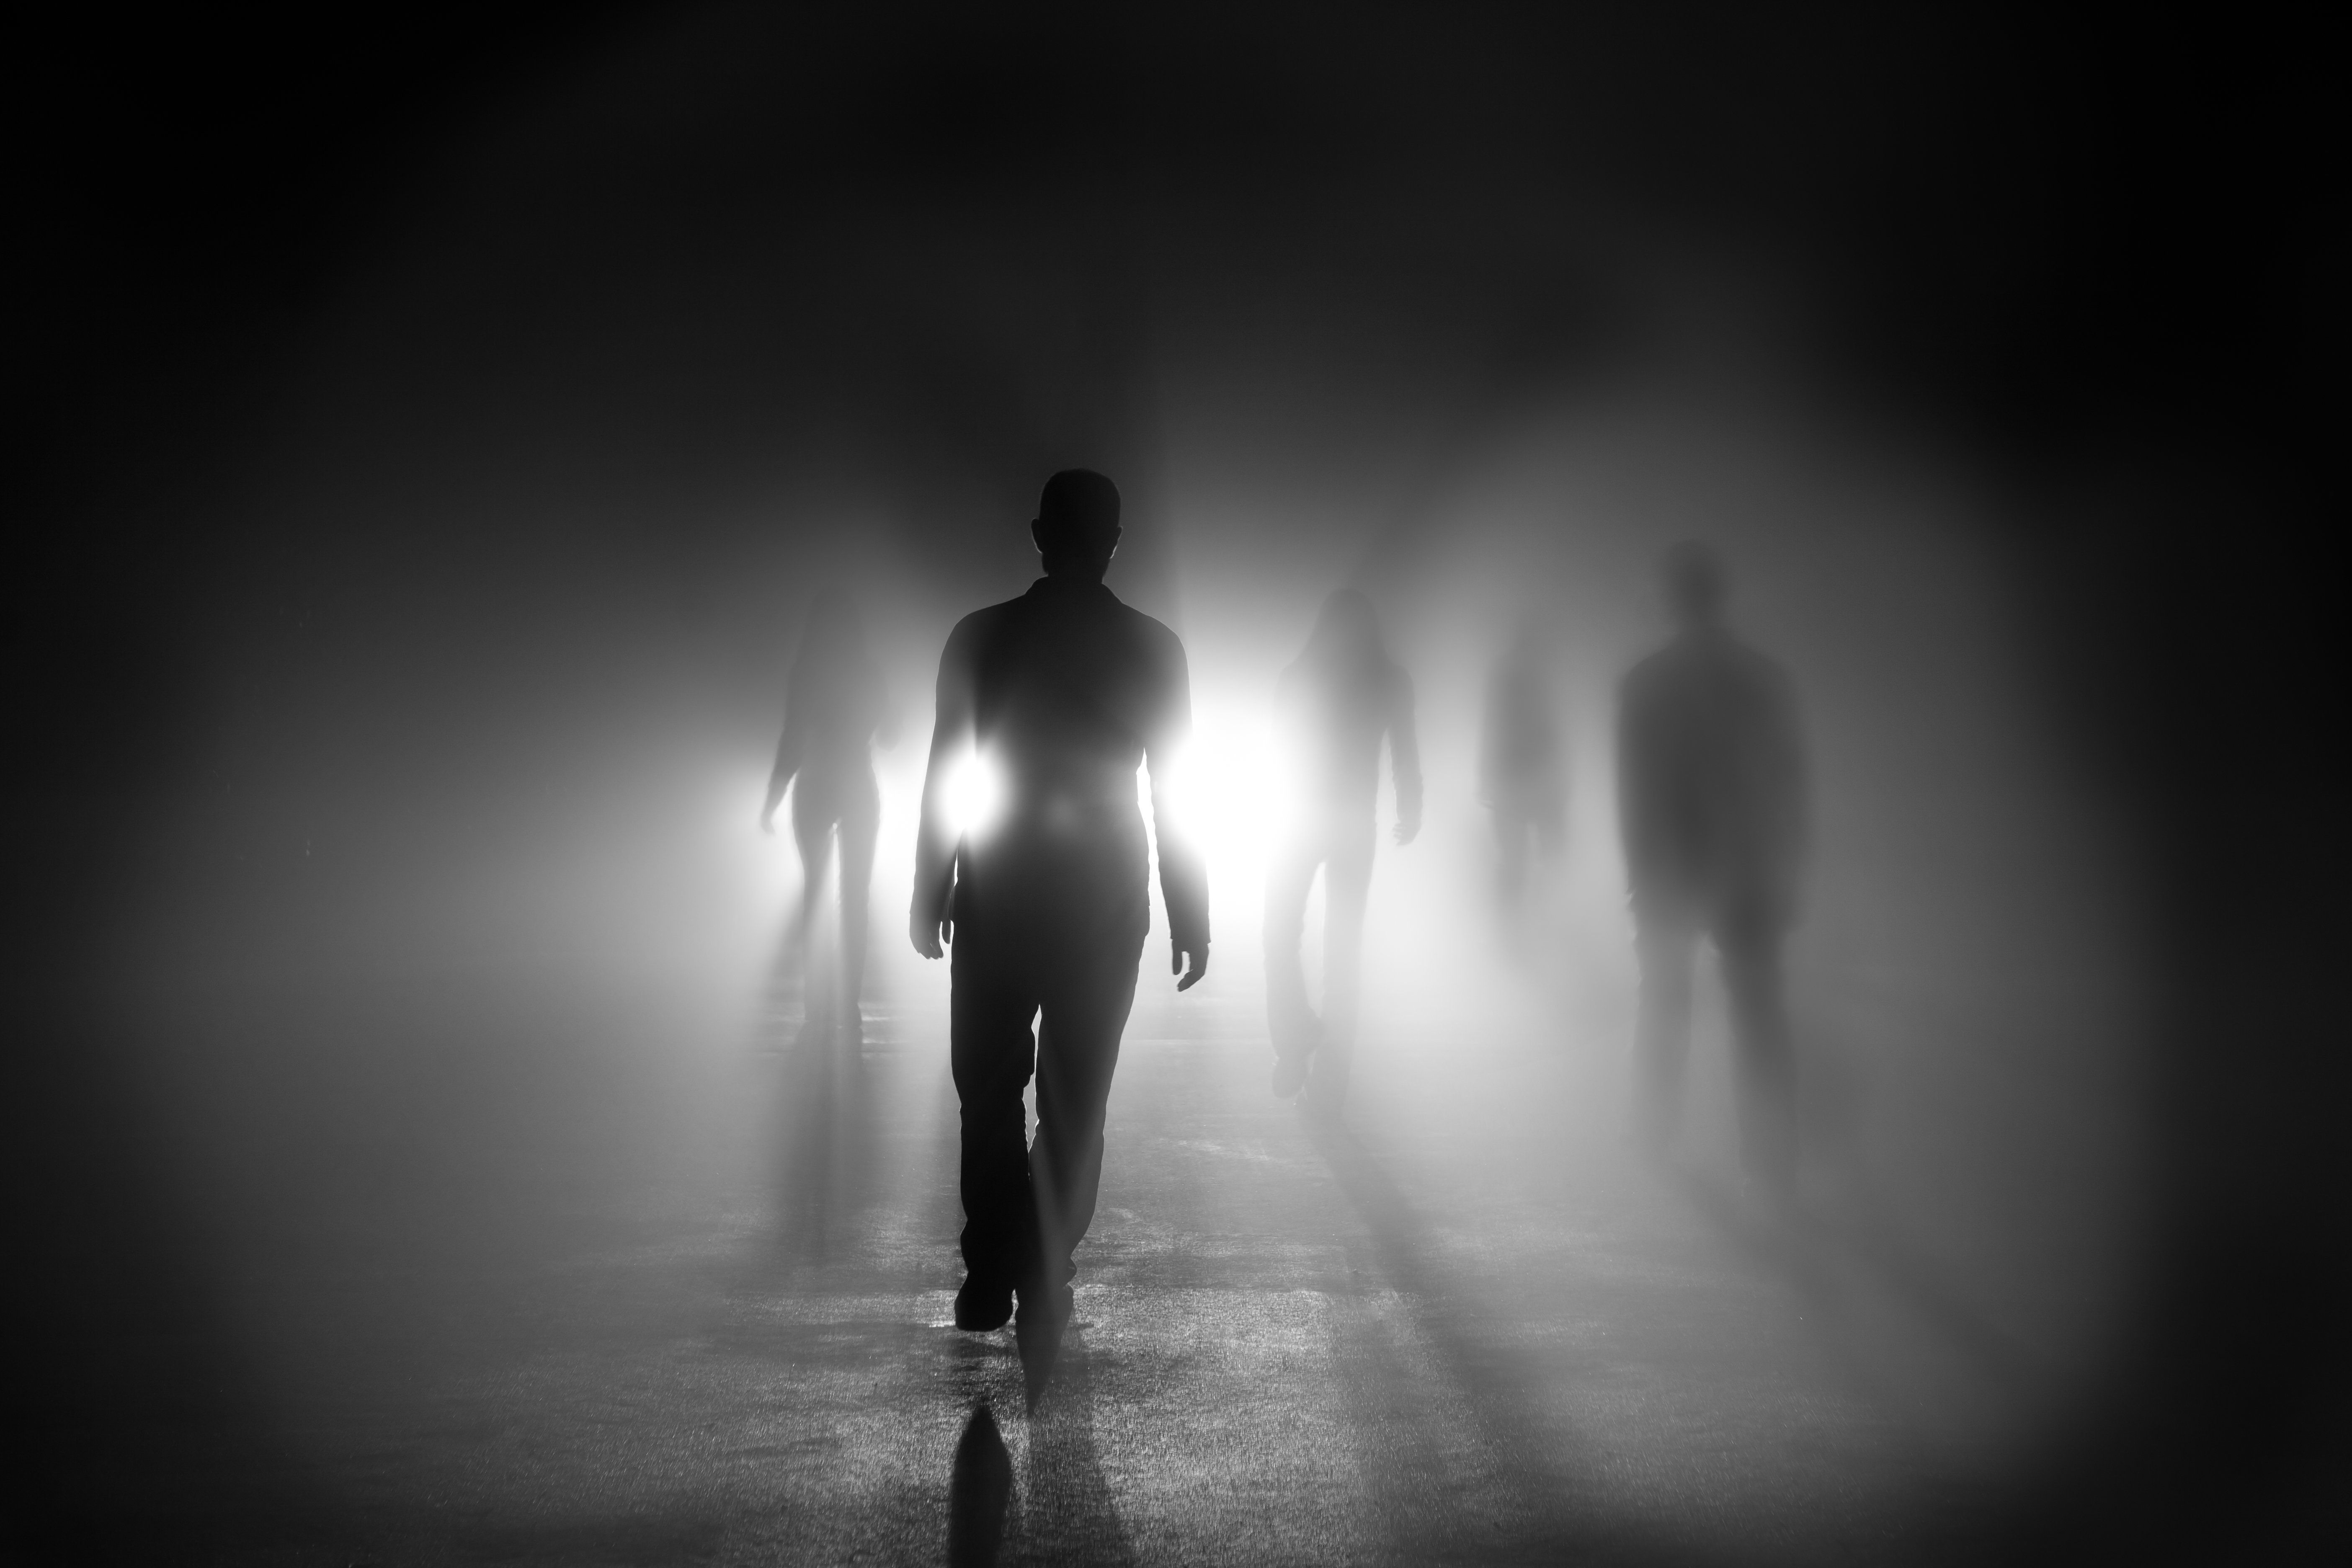 Silhouettes of 5 people walking into light with shadows.